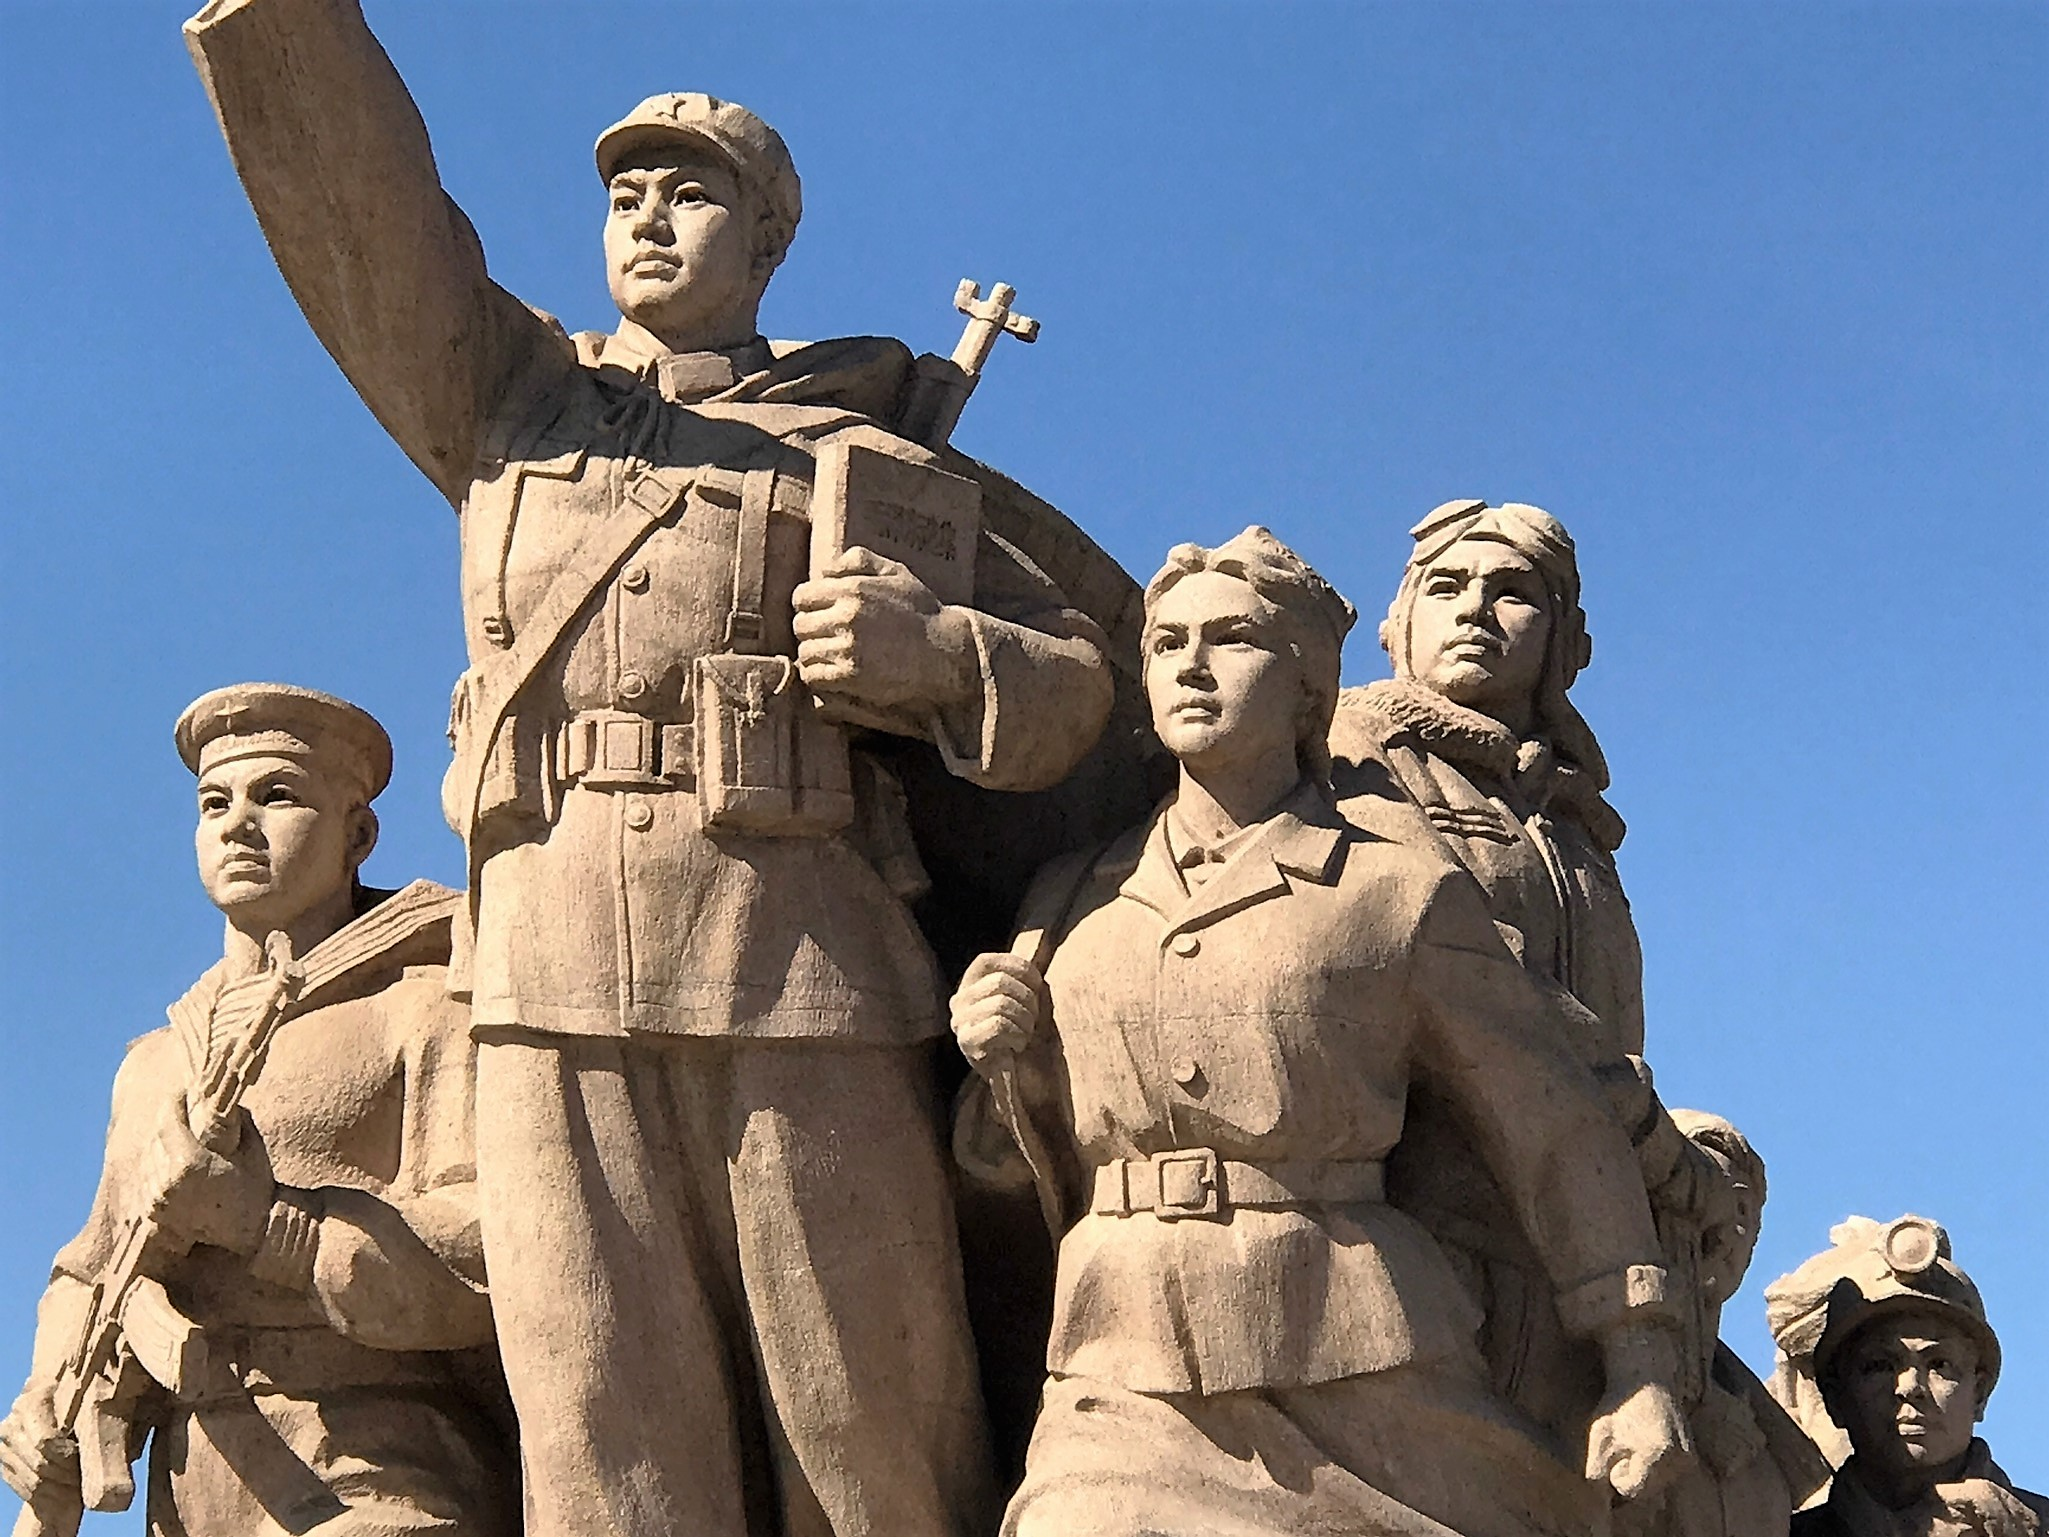 Heroic statues of the Proletariat in front of the Mausoleum